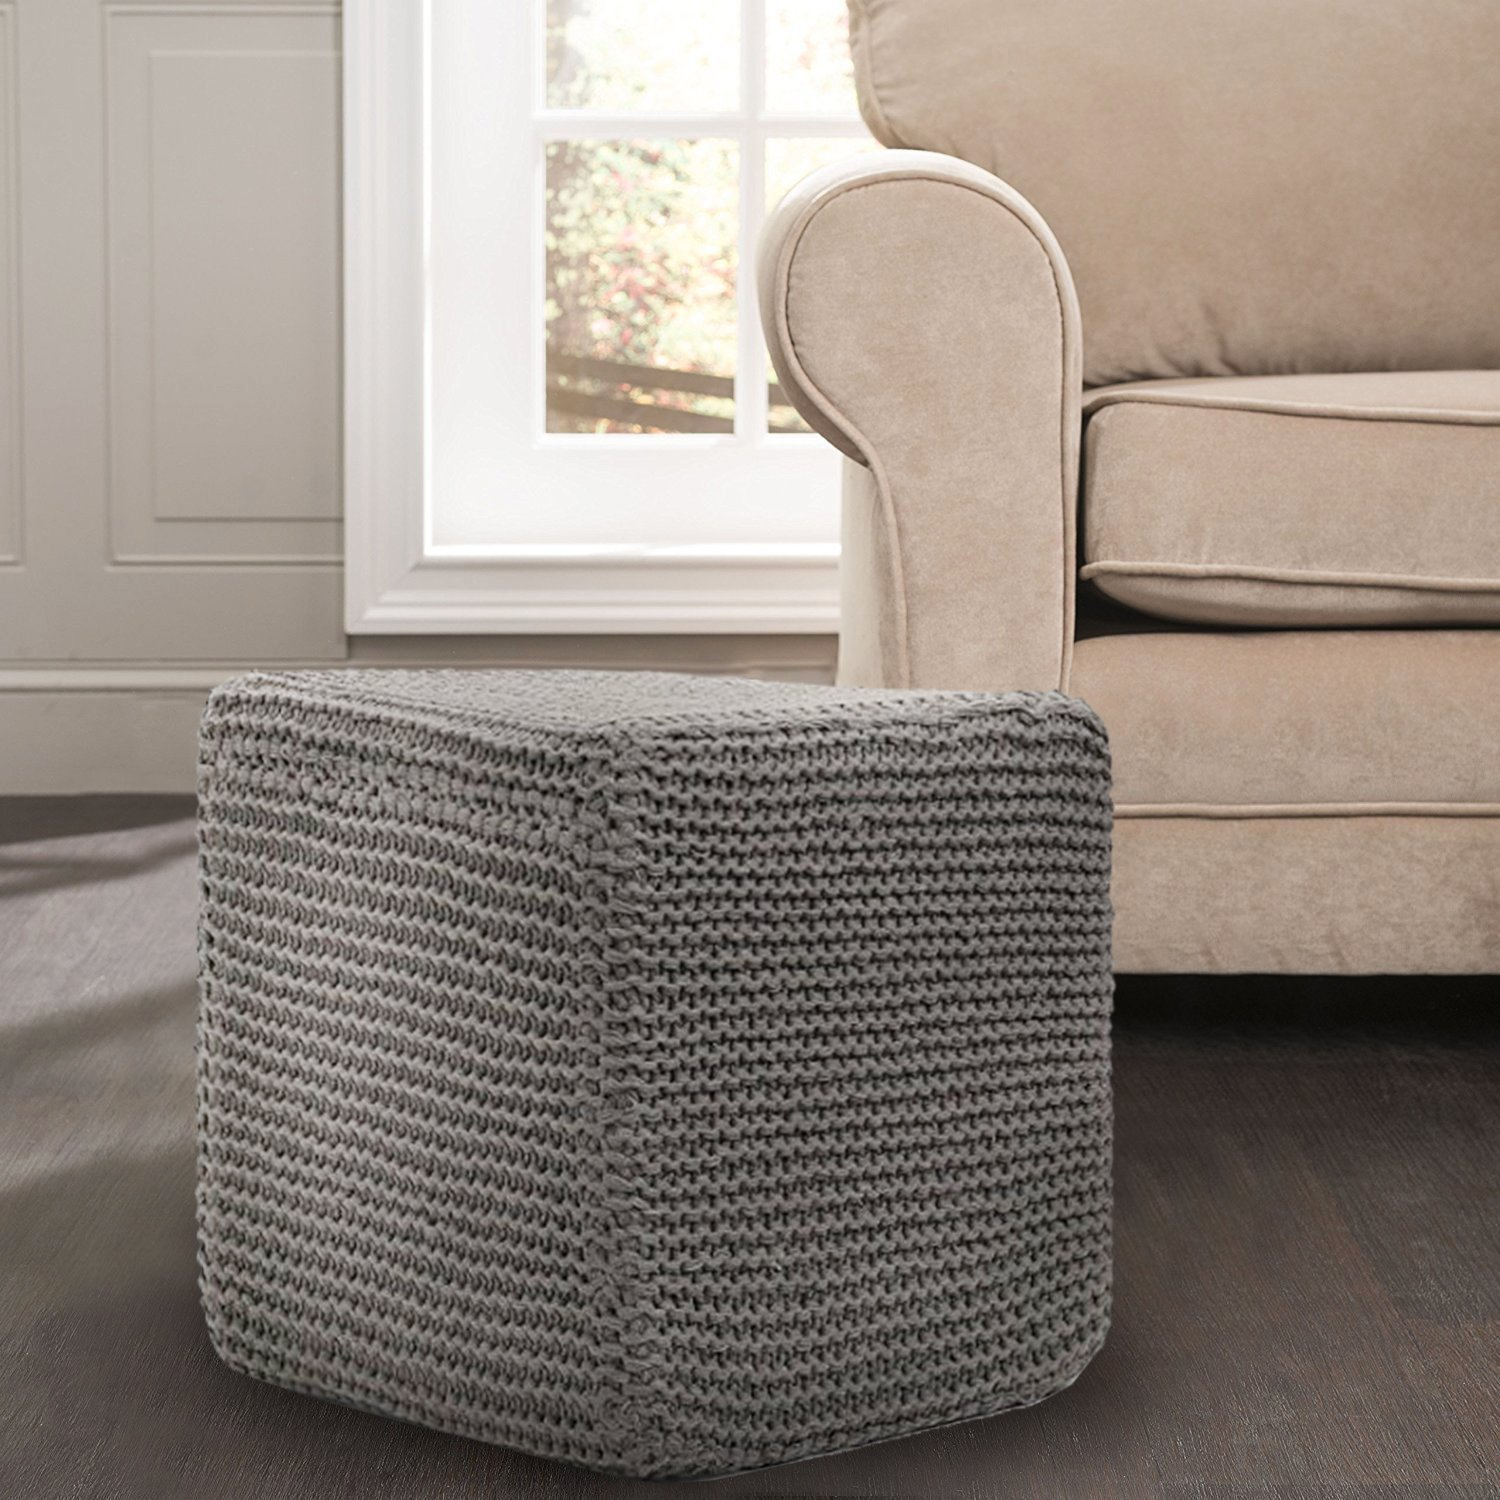 Great Home Discounts Hand Knitted Cable Style DoriPouf –Handmade Floor Ottoman With 100% Cotton Braid Cord –Super-Soft Hand Stitched BeanBag Chair–Handcrafted Cable-Knit Foot Rest (15''X15'')